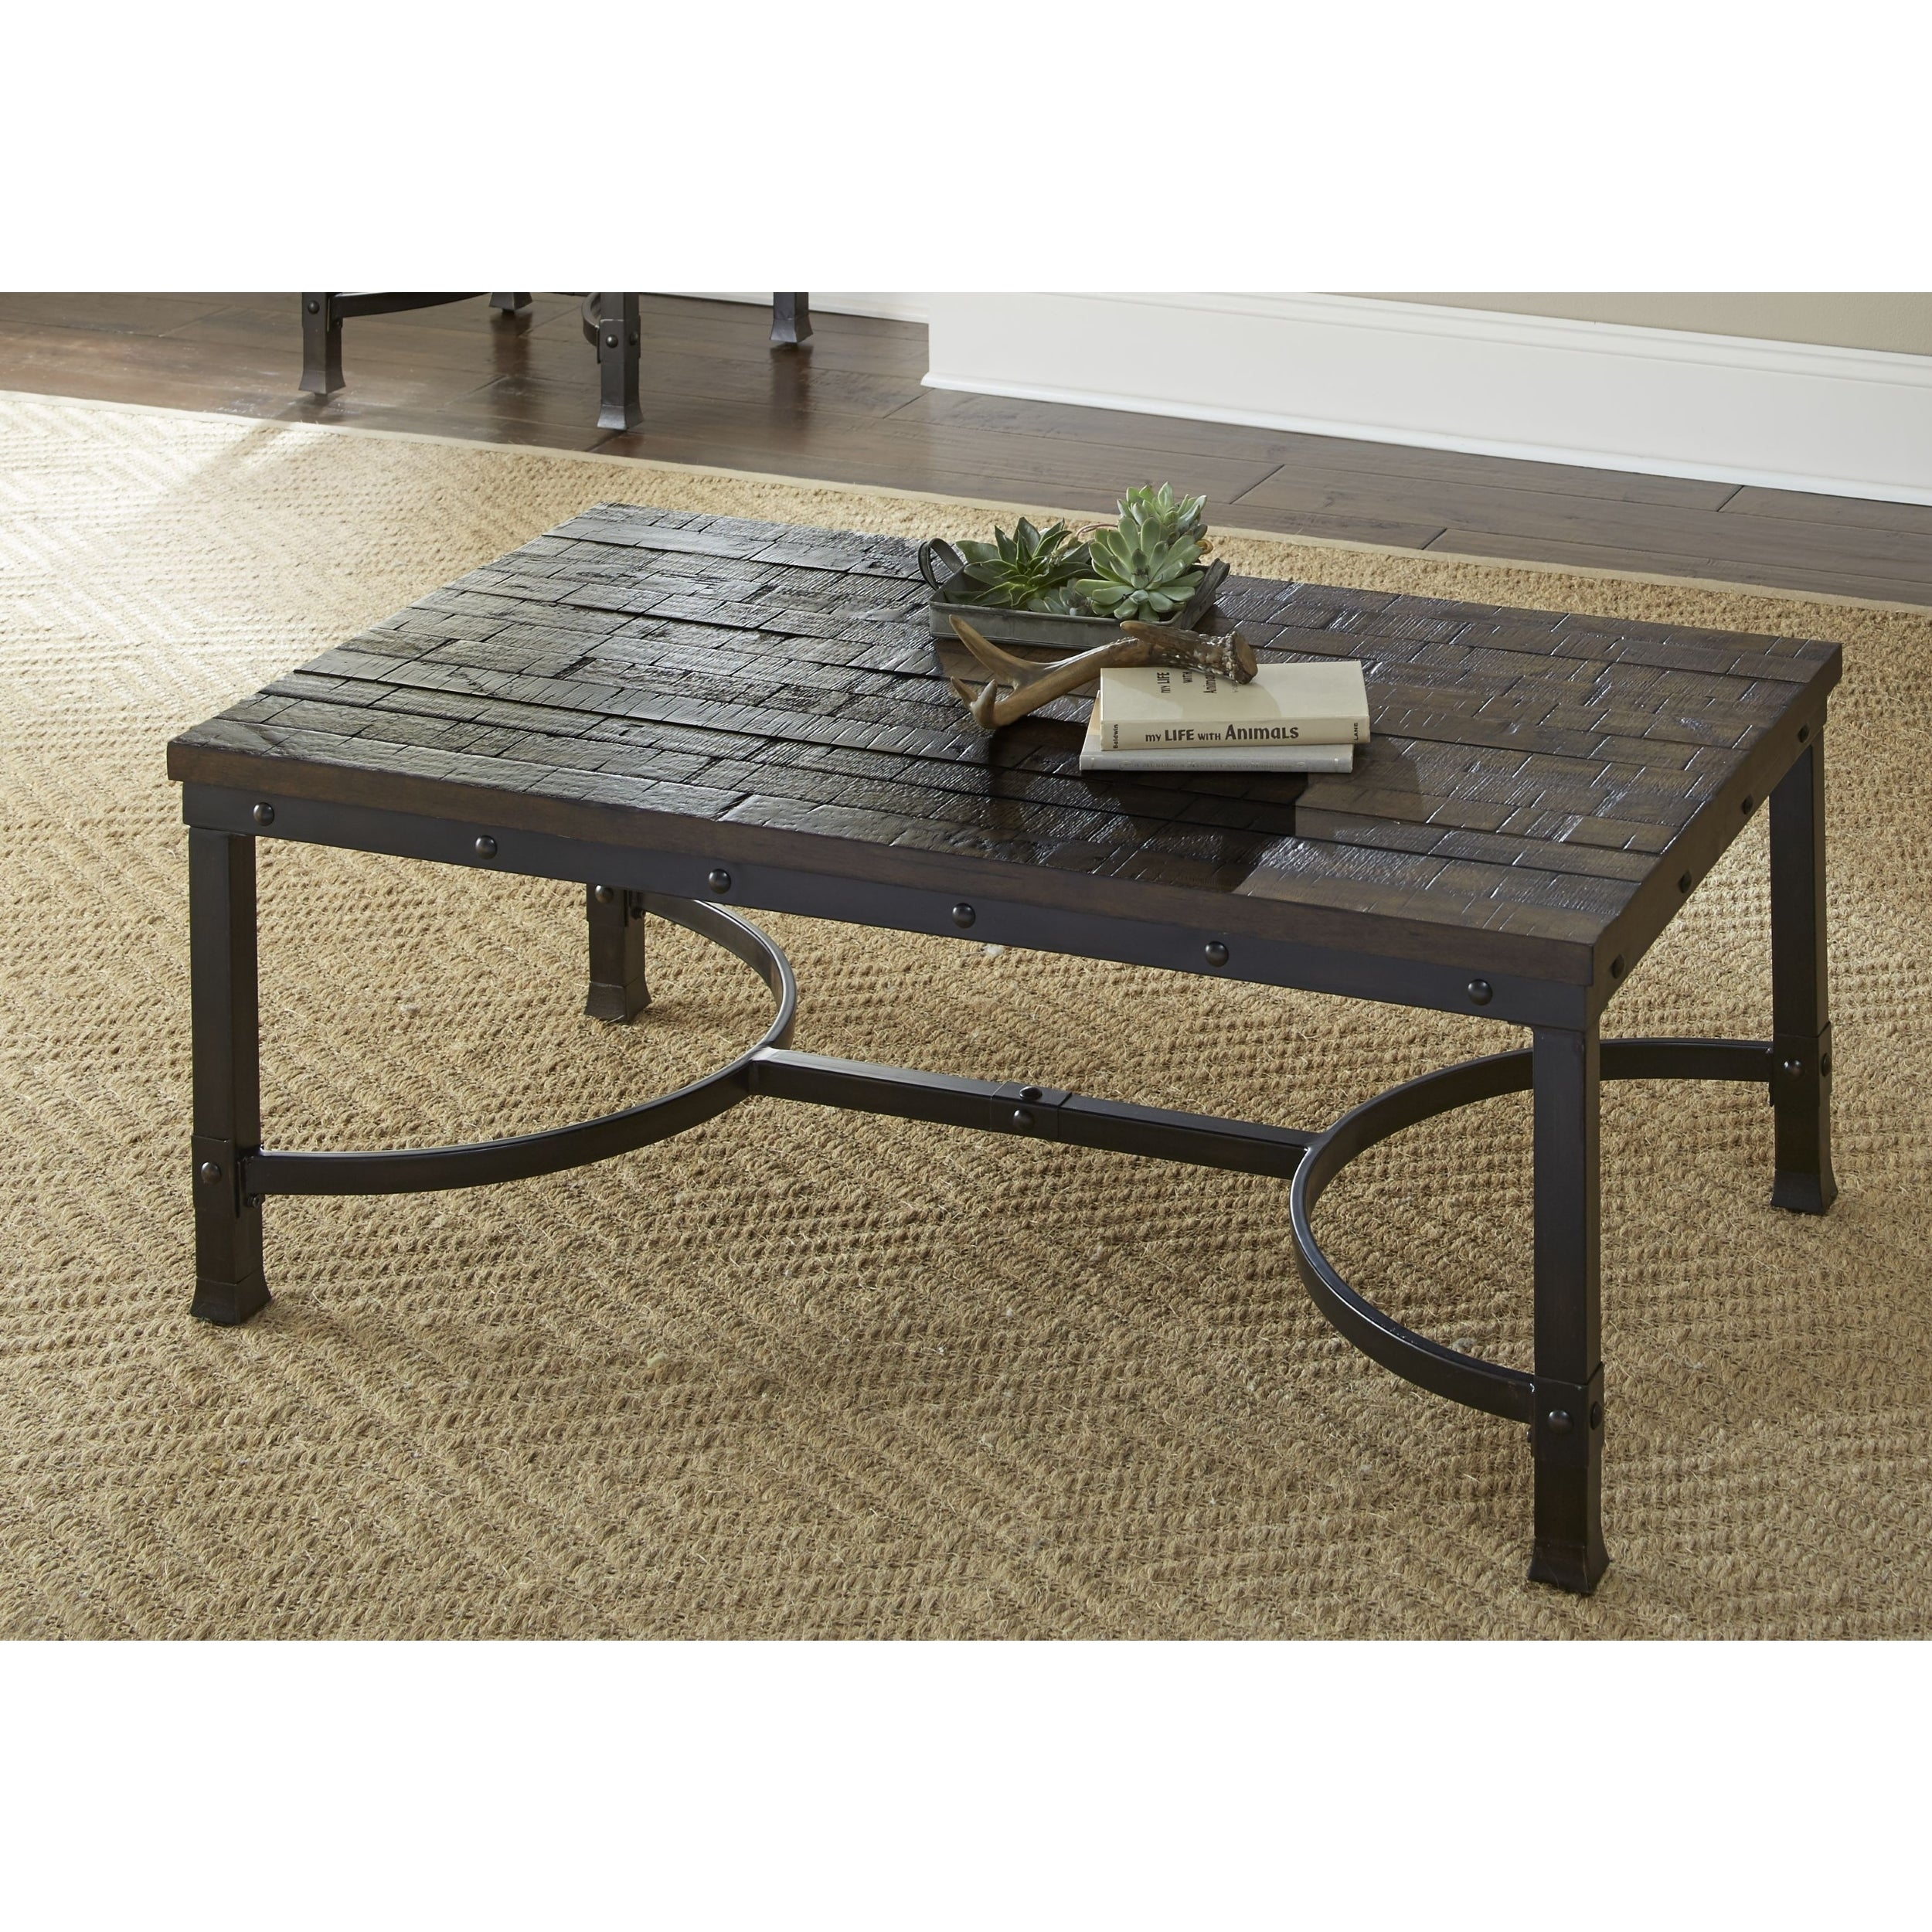 industrial style outdoor furniture. Austin Industrial Style 48-Inch Rectangle Coffee Table By Greyson Living - Free Shipping Today Overstock 23384682 Outdoor Furniture T